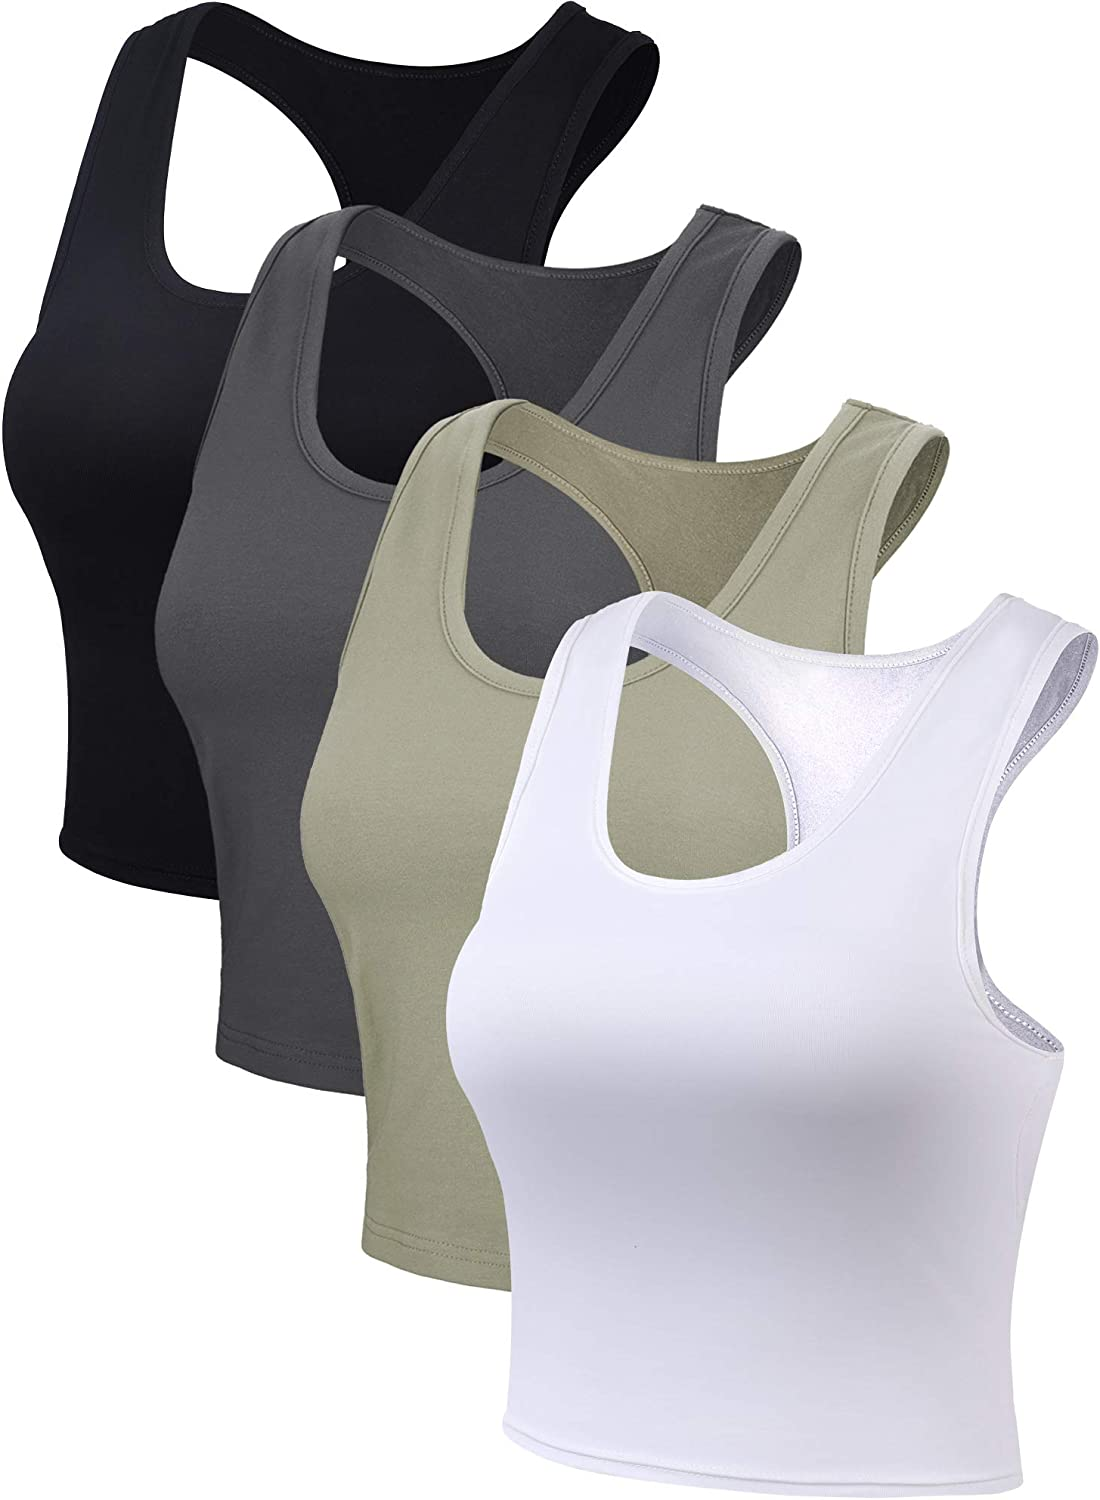 4 Pieces Women Cotton Basic Sleeveless Racerback Tank Top Camisole Sports Crop Top for Daily Wearing: Clothing